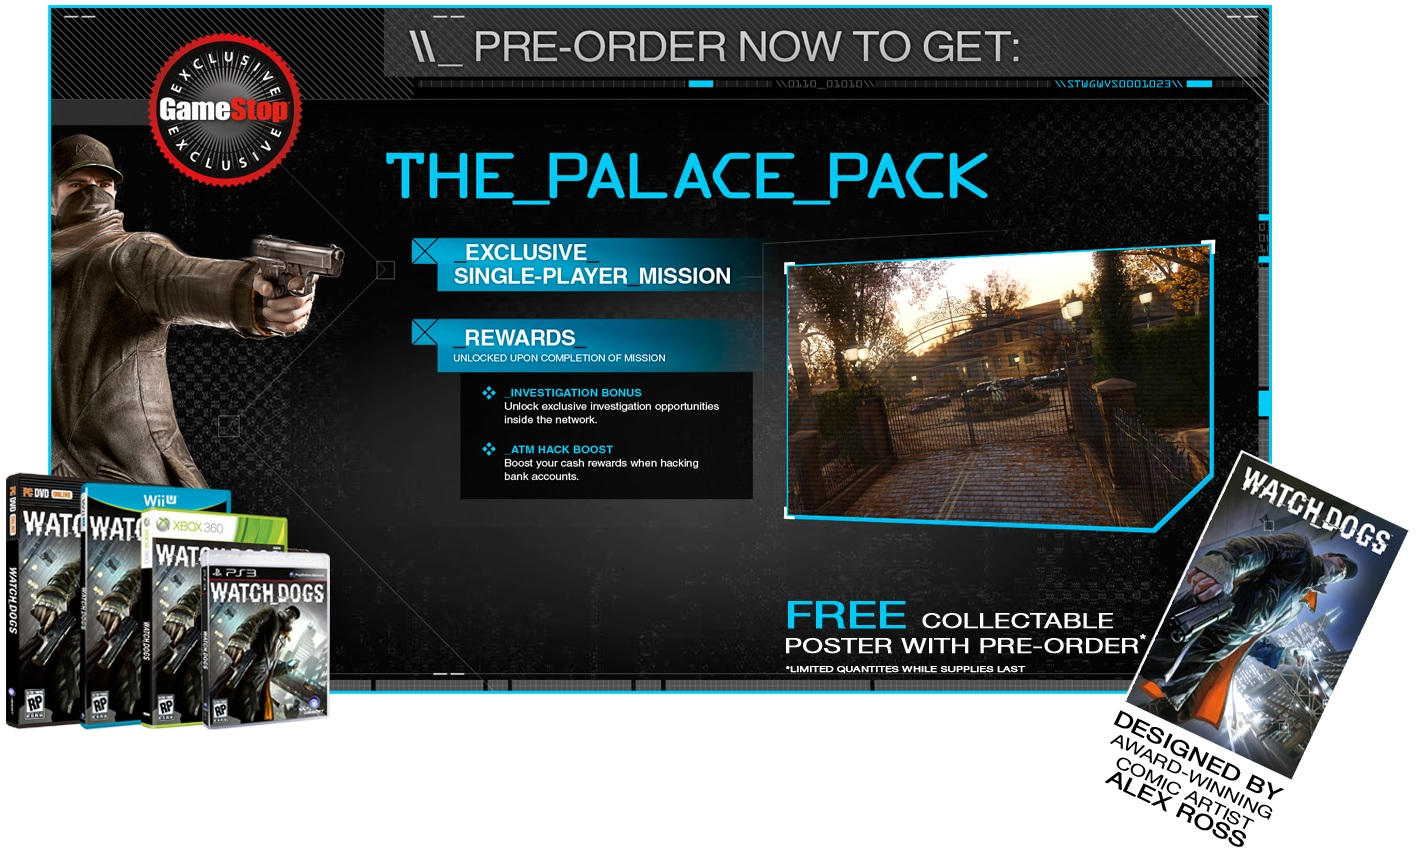 Watch_Dogs_GameStop_pre-order